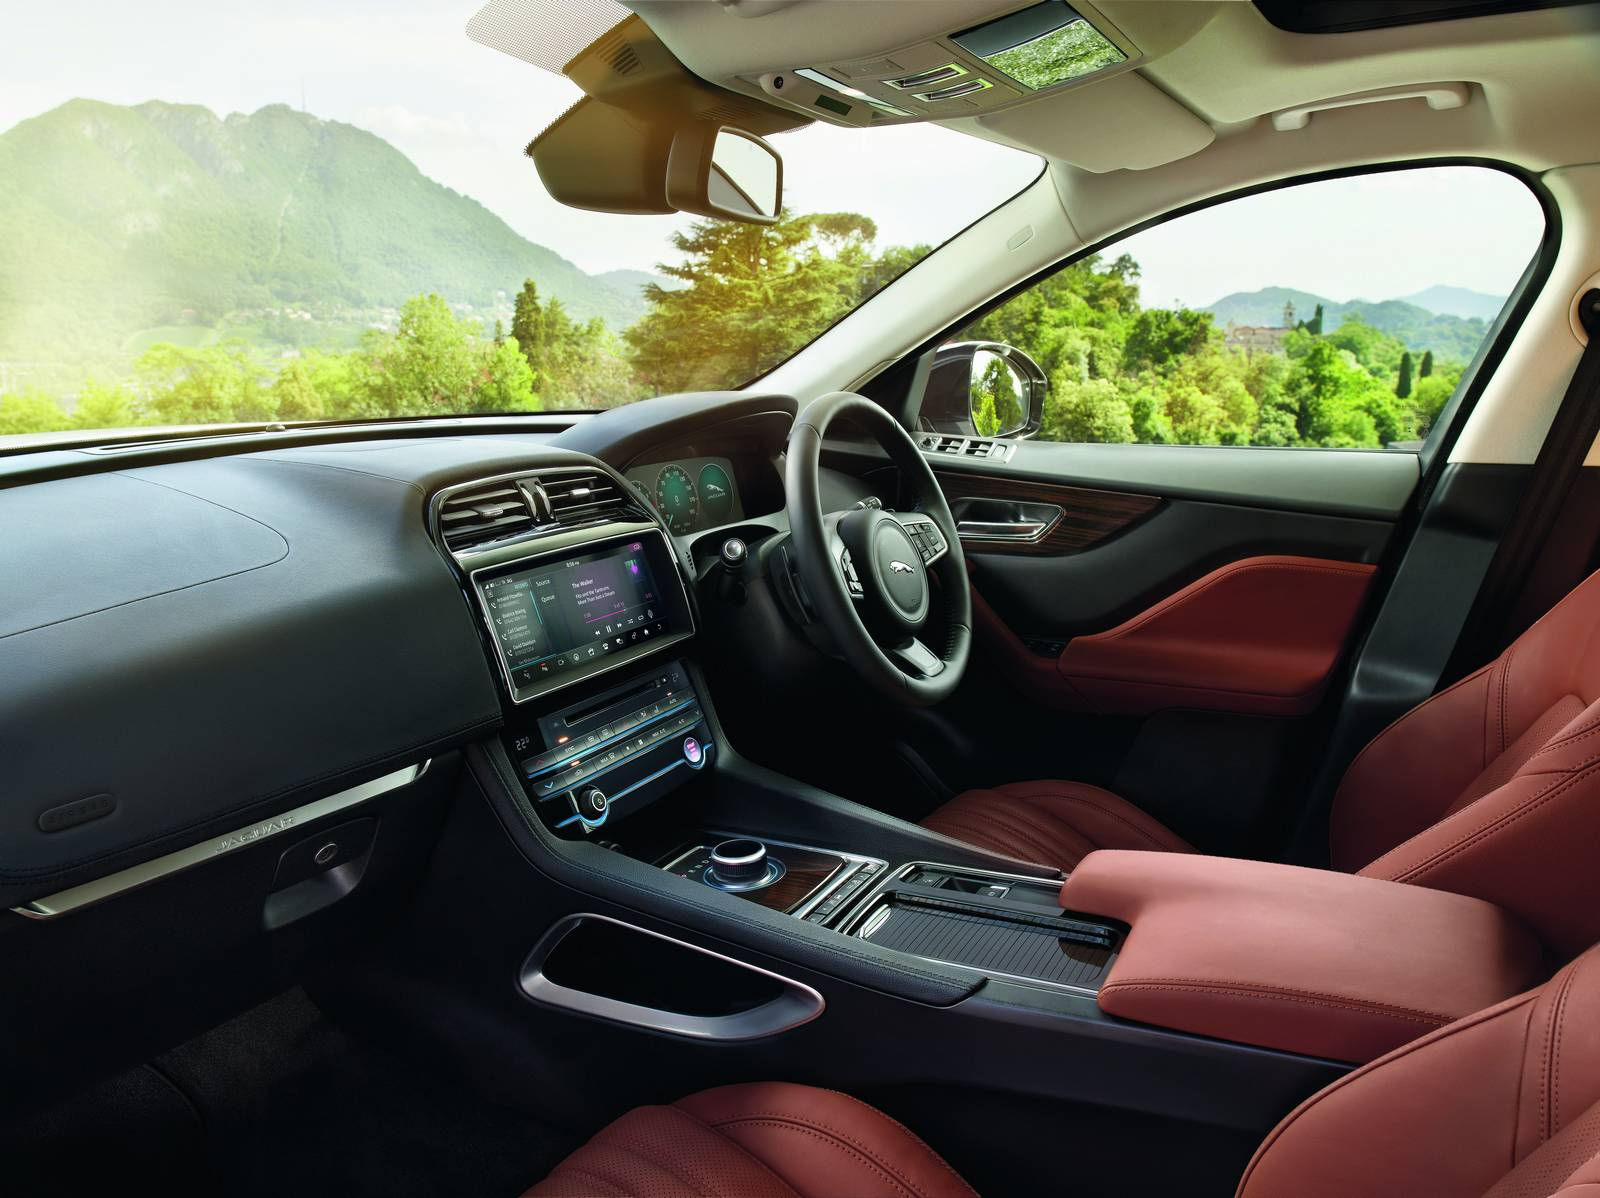 marvelous-design-of-the-brown-seats-ideas-with-black-dash-and-jaguar-f-pace-2016-interior-ideas